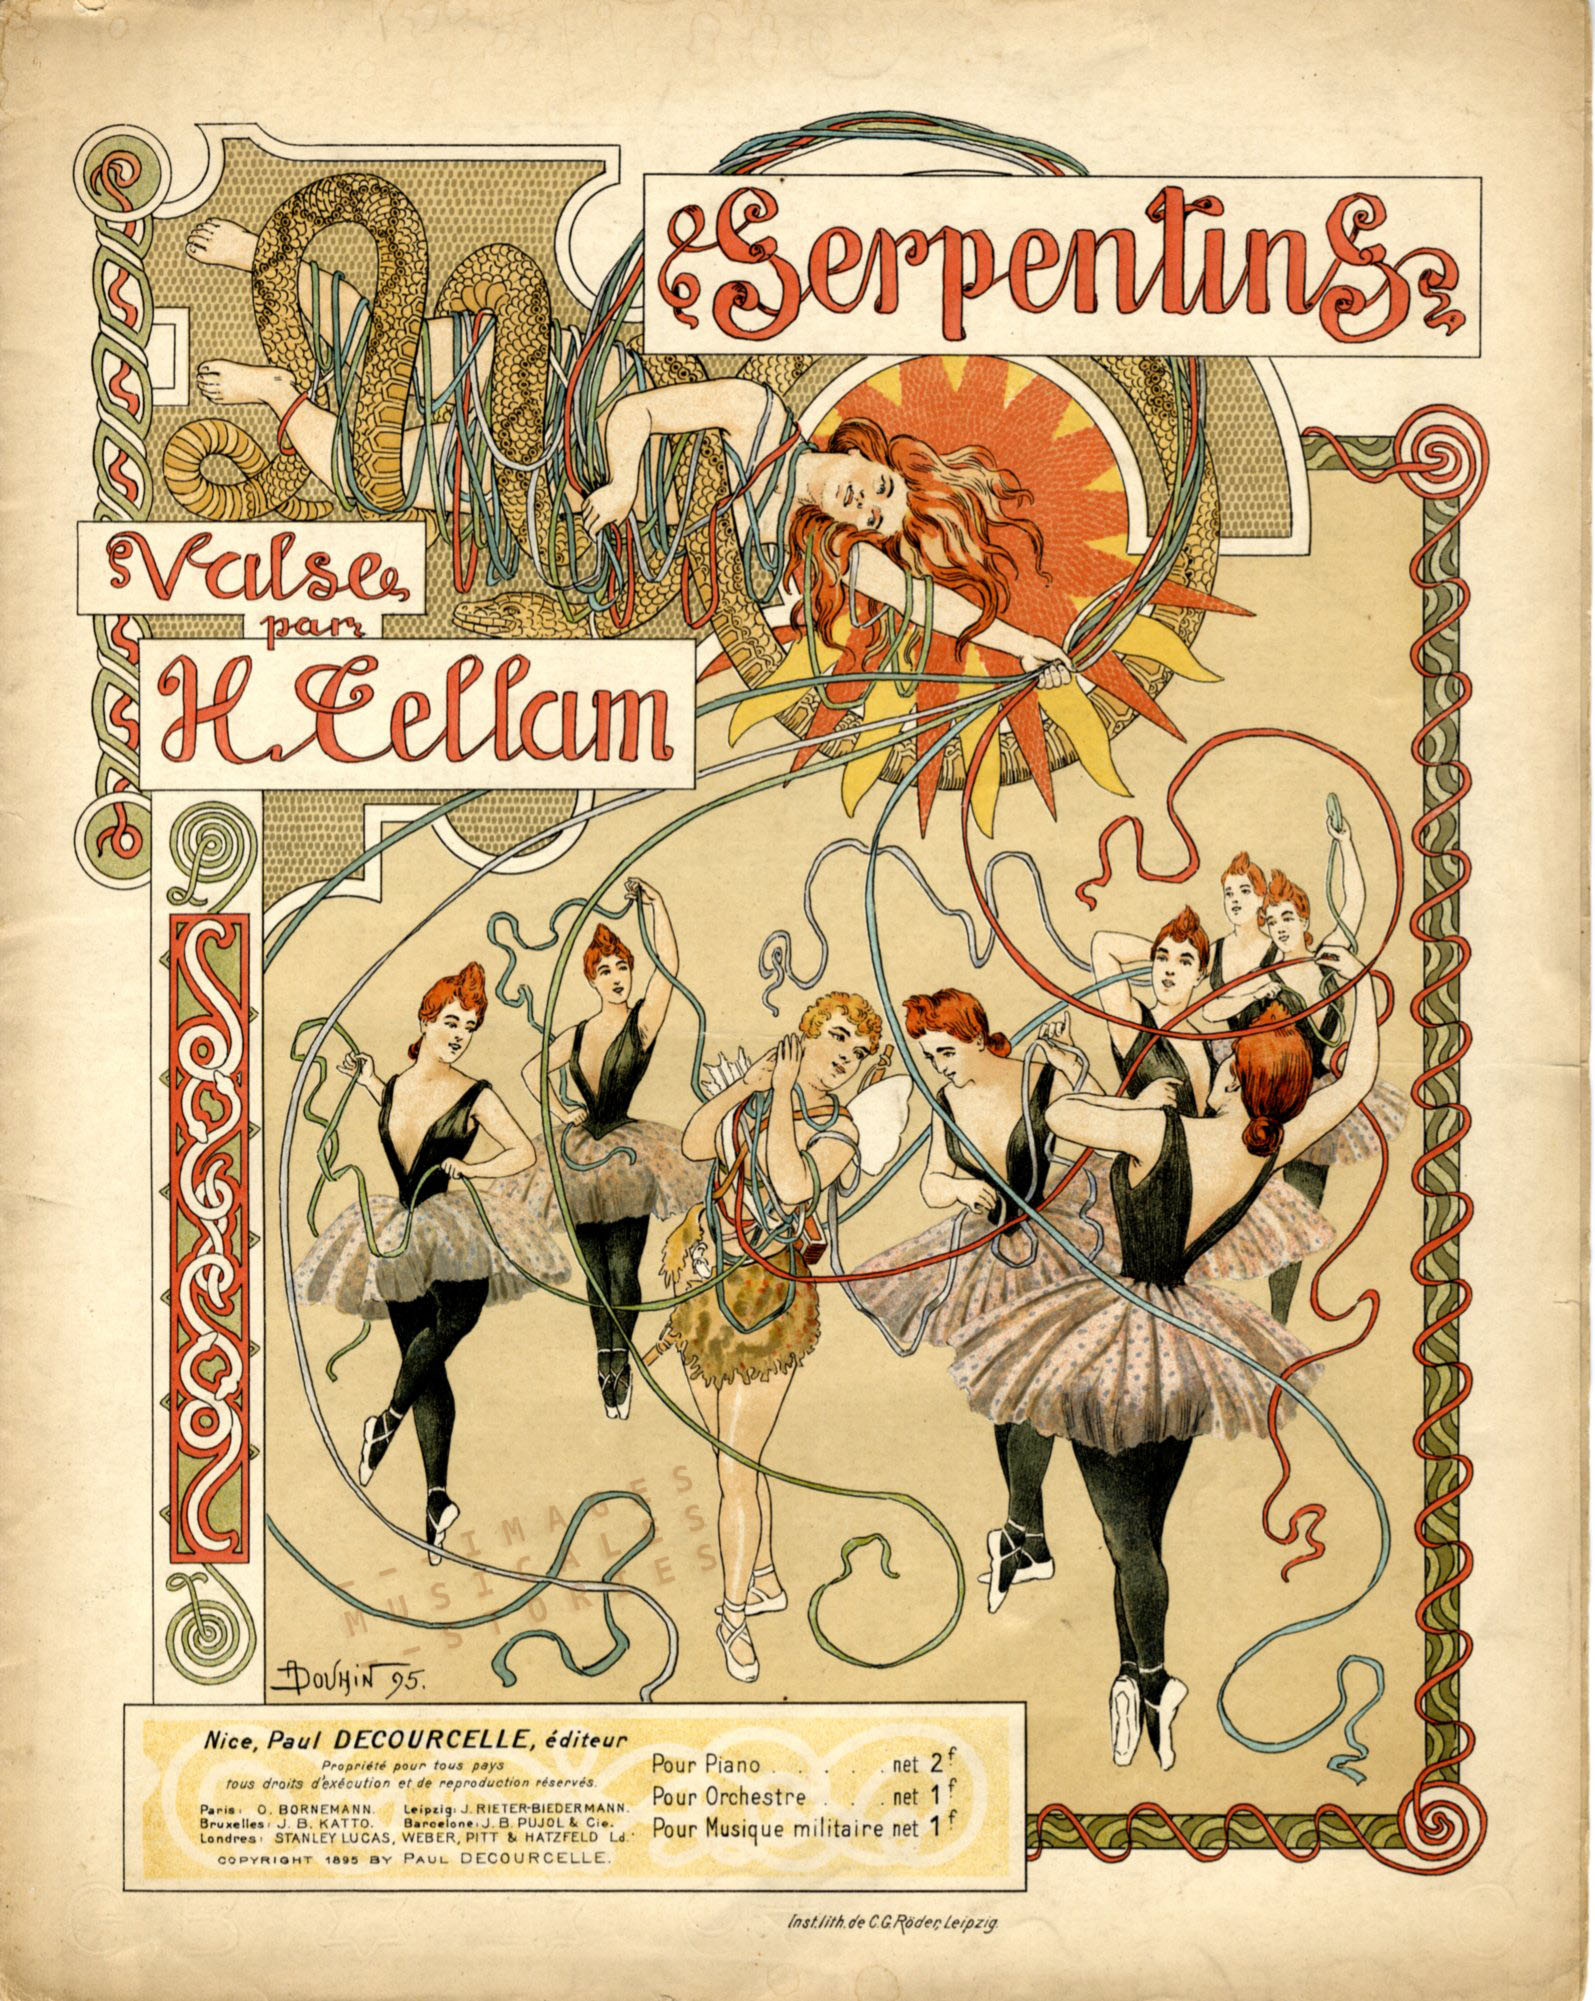 Partitions musicales illustrée par A. Douhin (1895).